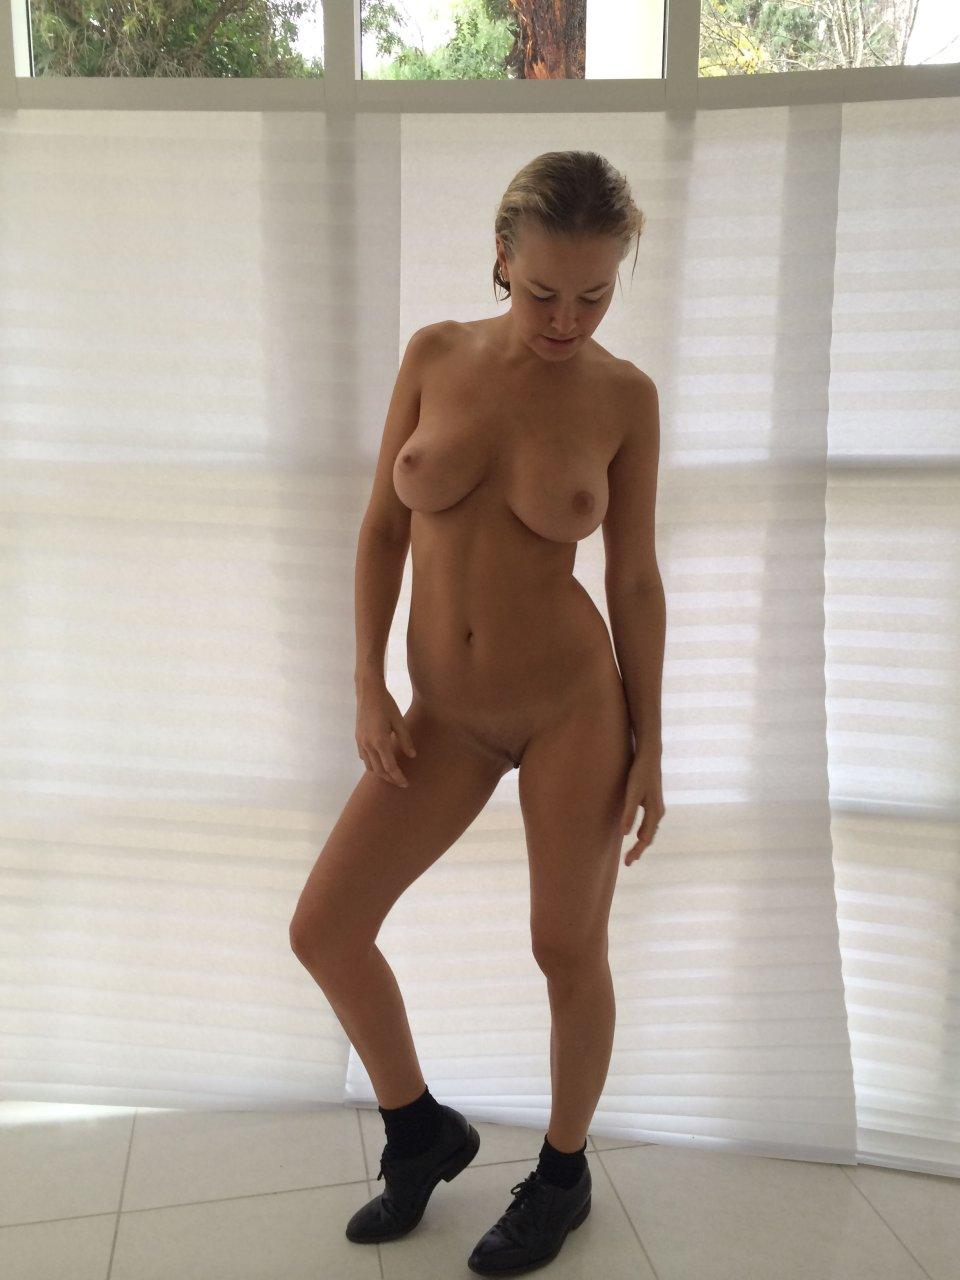 lara-bingle-nude-photos-in-shower-coco-austin-porno